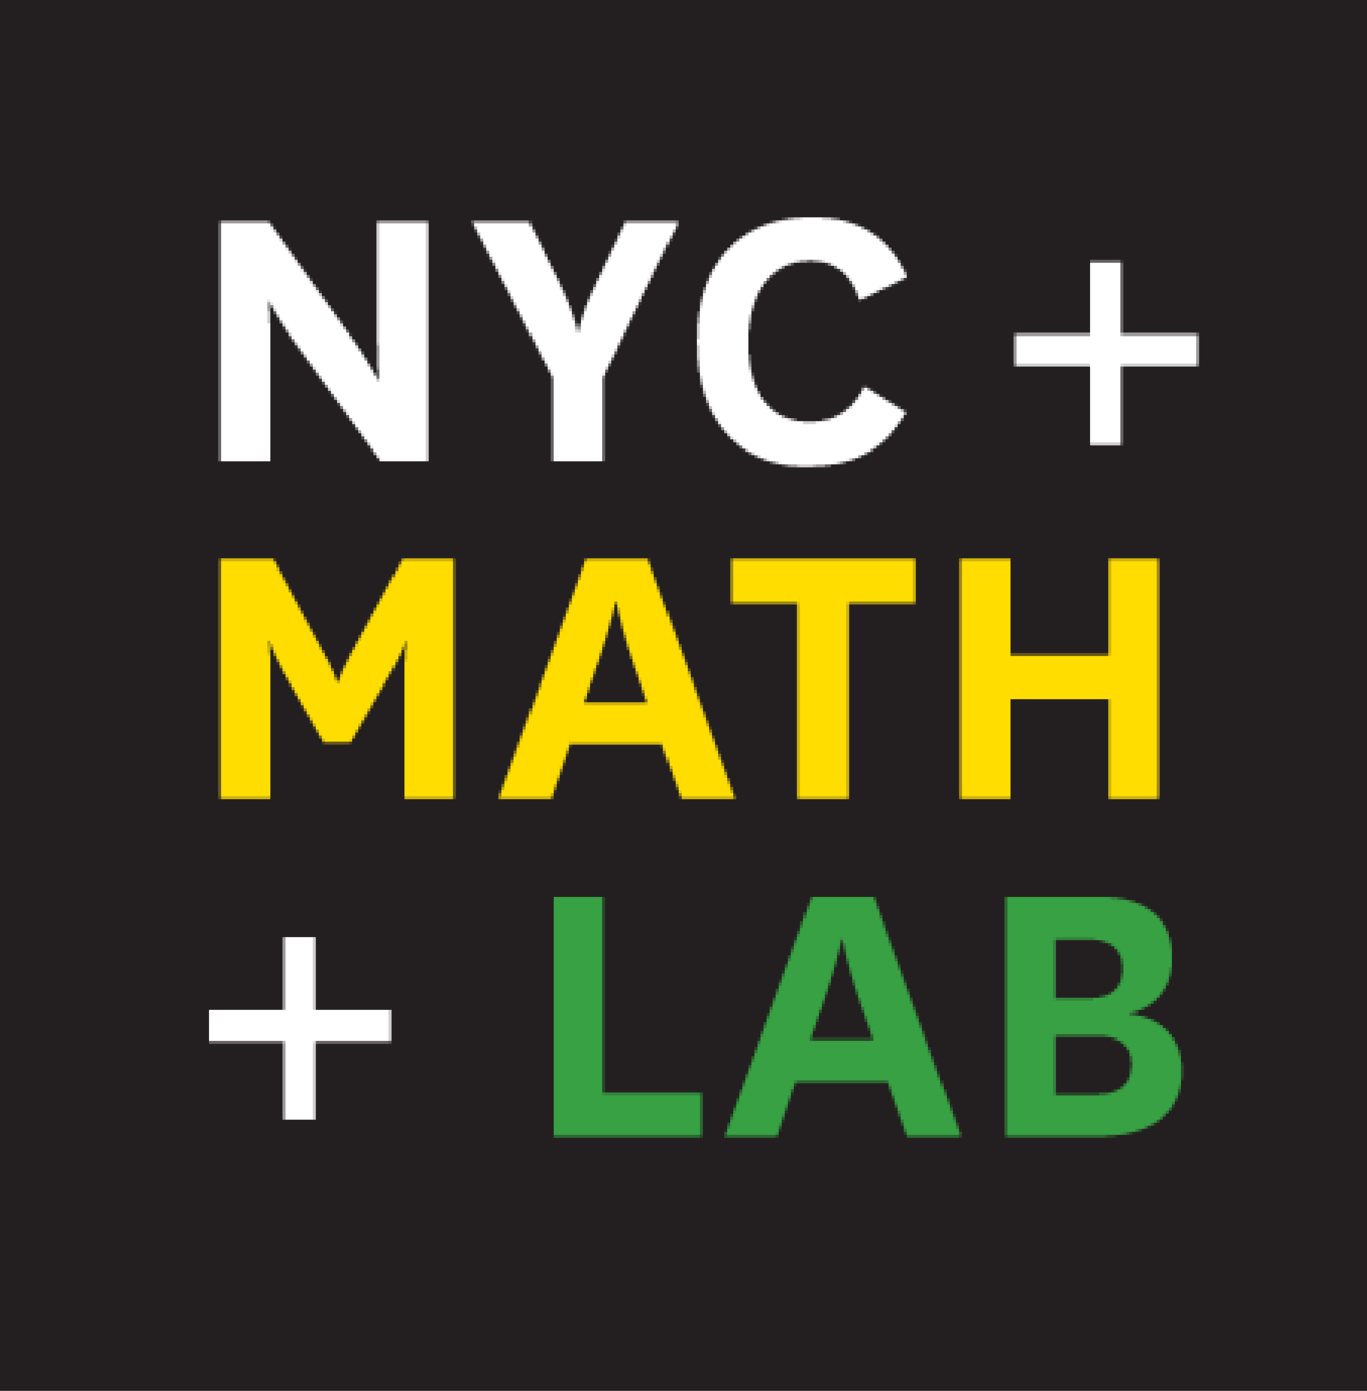 The NYC Math Lab